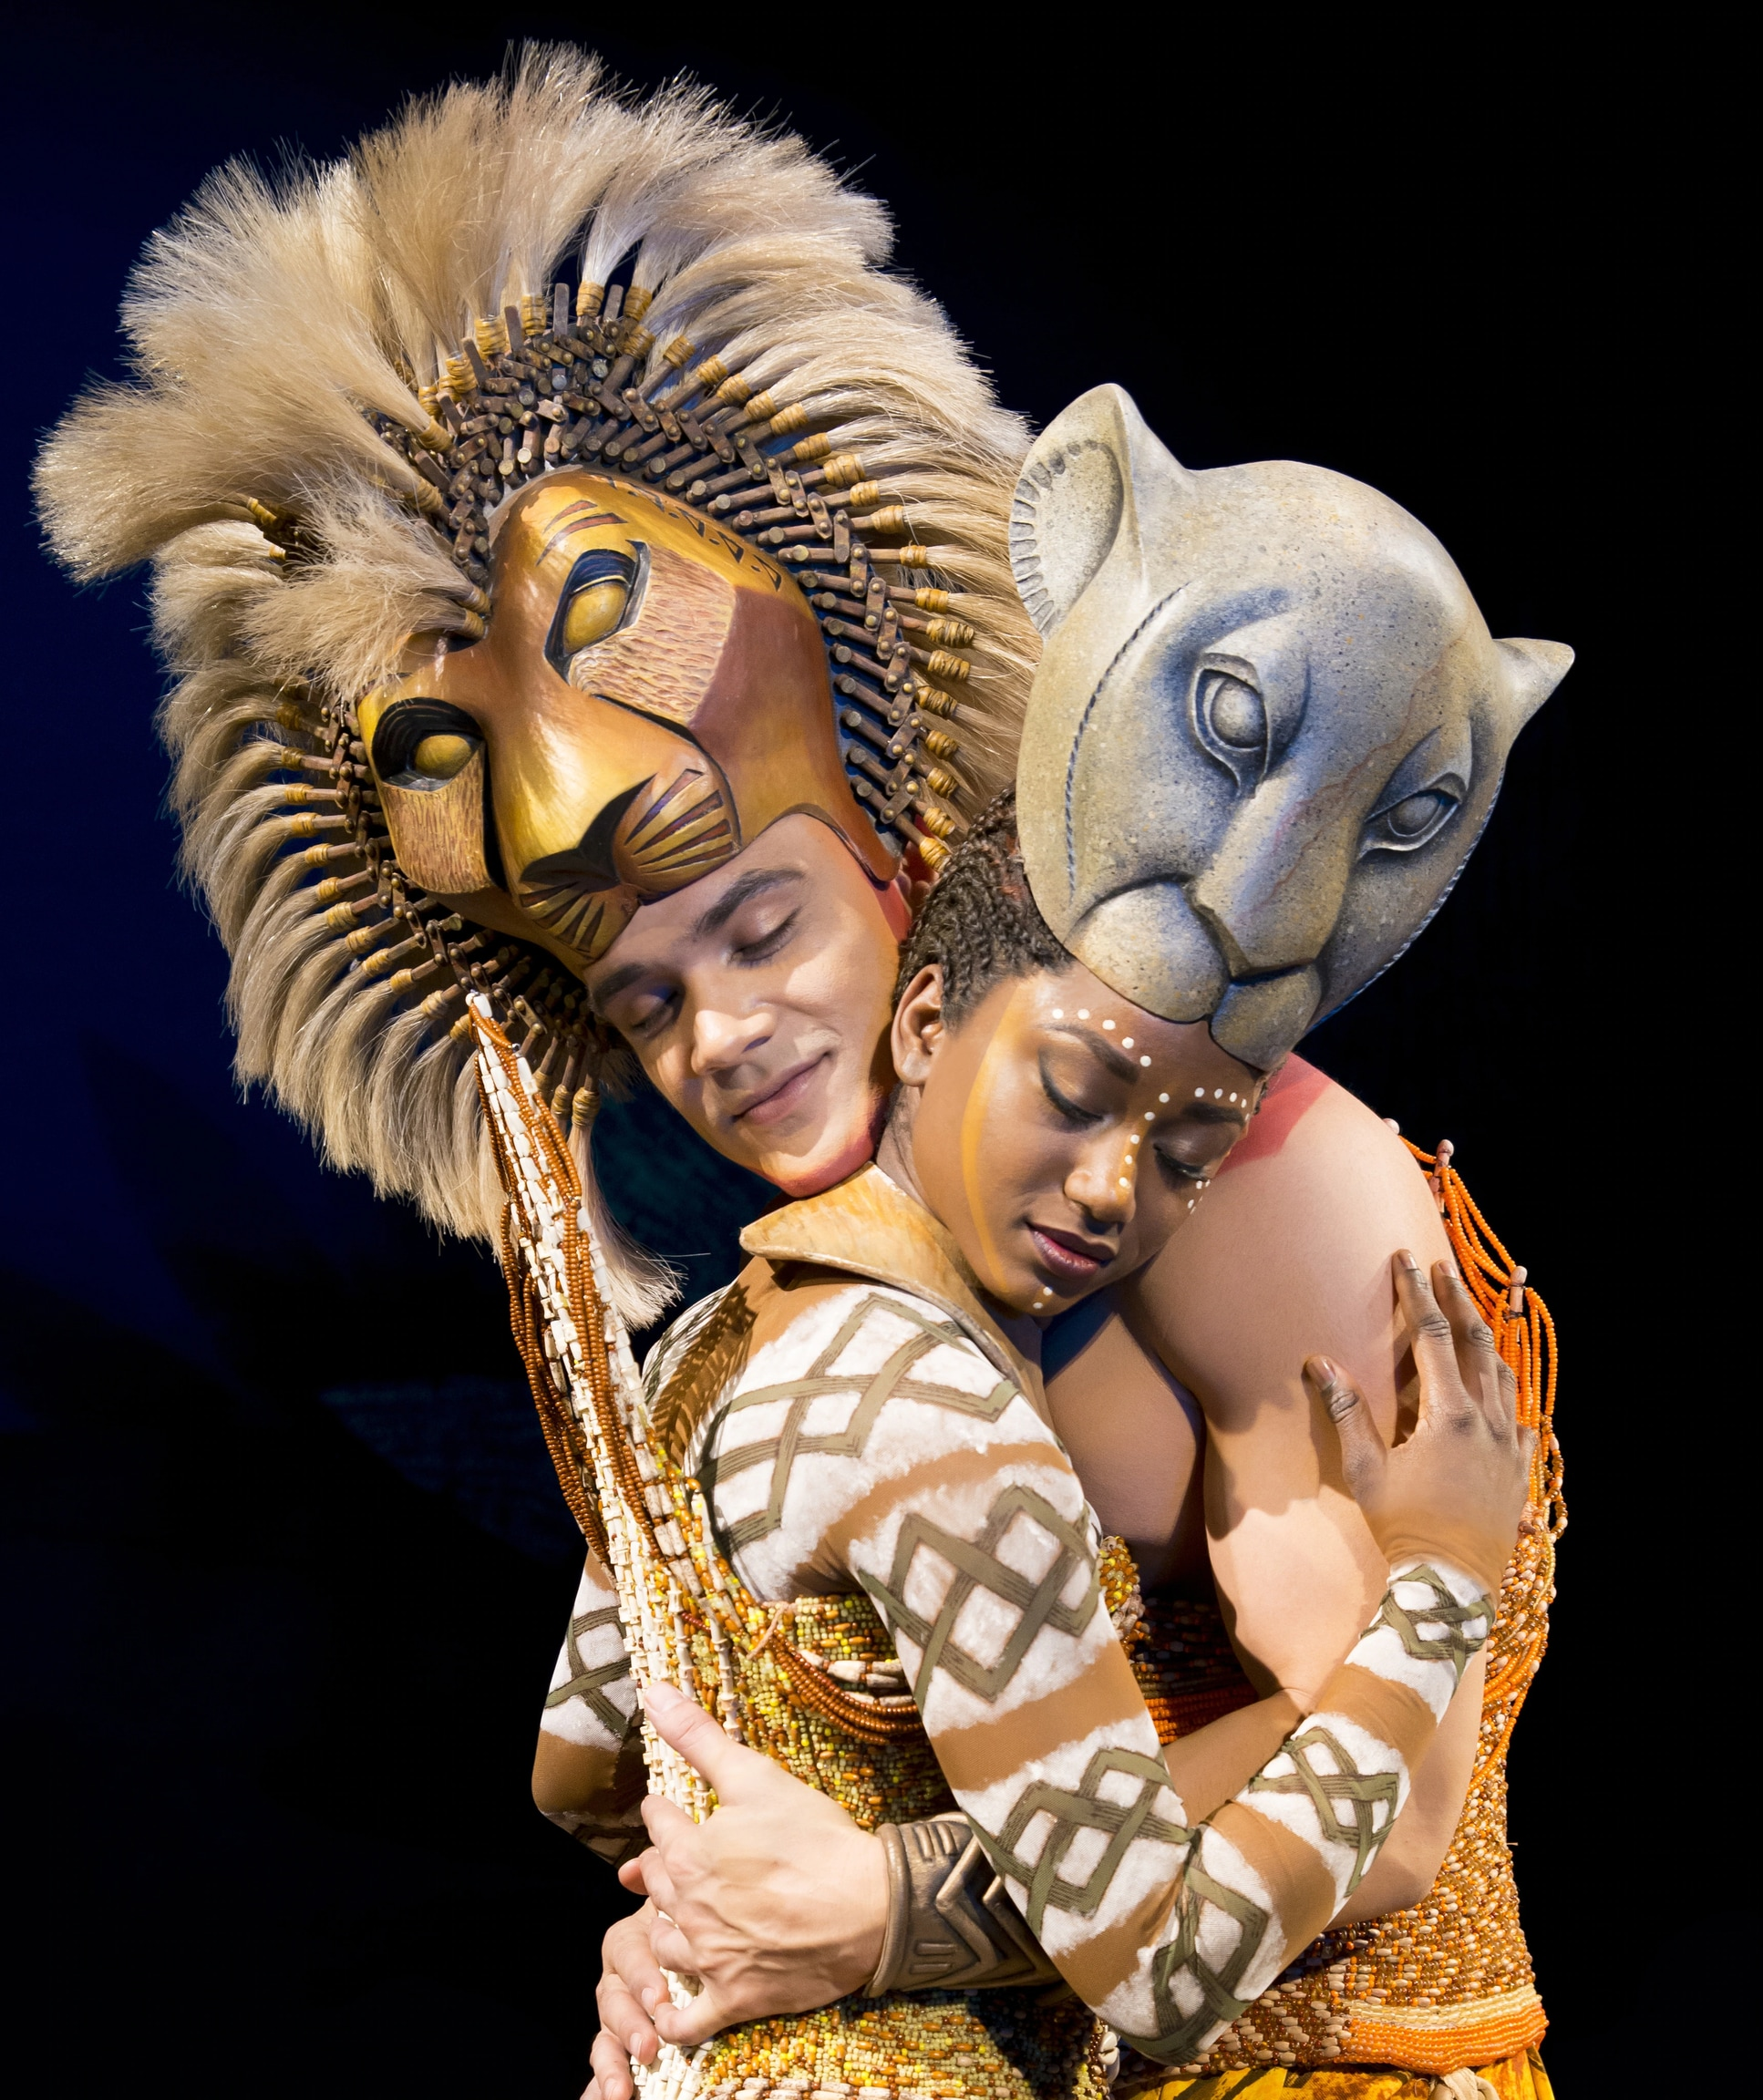 Janique Charles as Nala embracing Simba in The Lion King the Musical